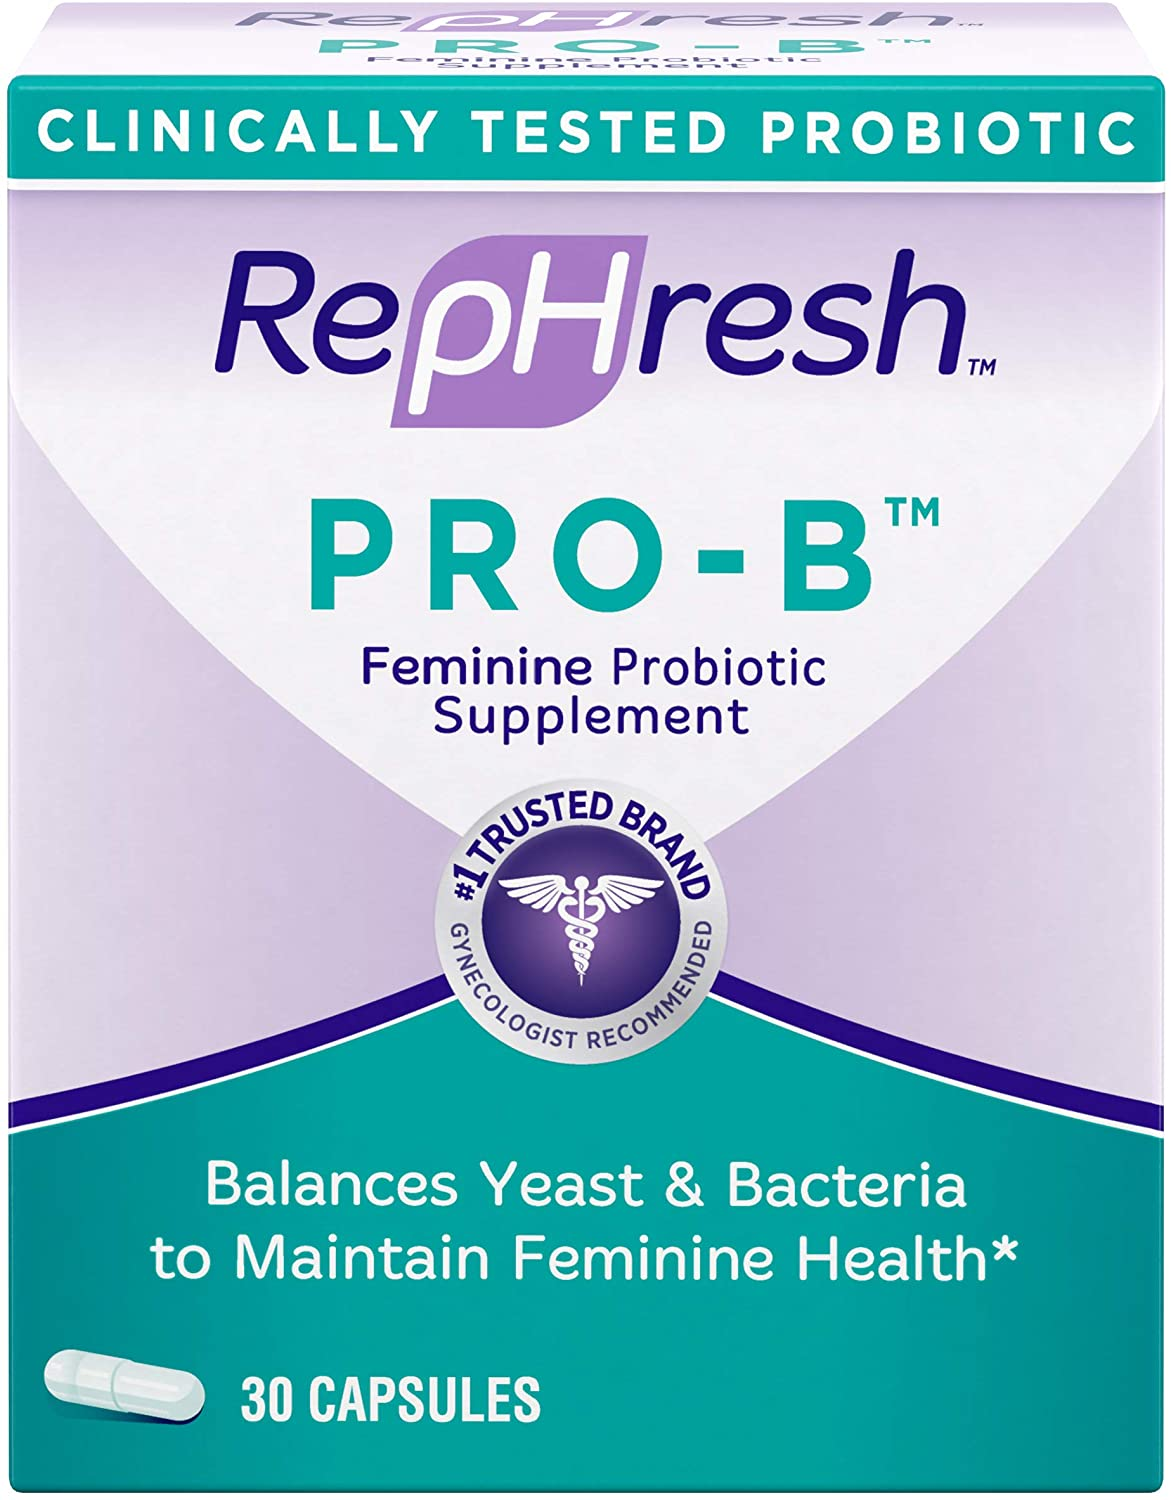 RepHresh Pro-B Probiotic Review1